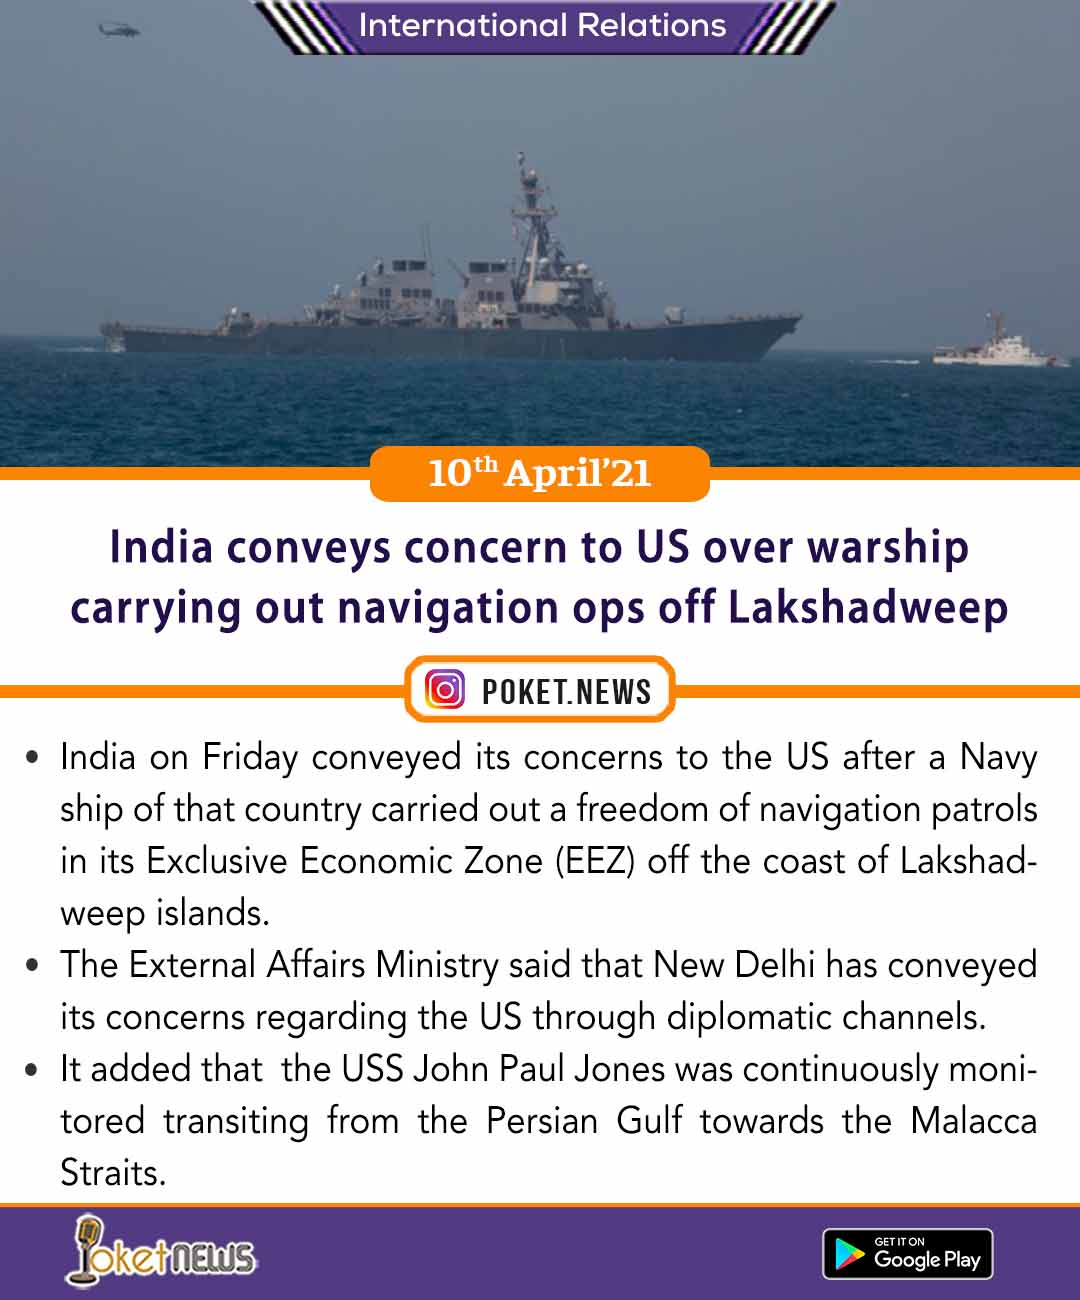 India conveys concern to US over warship carrying out navigation ops off Lakshadweep